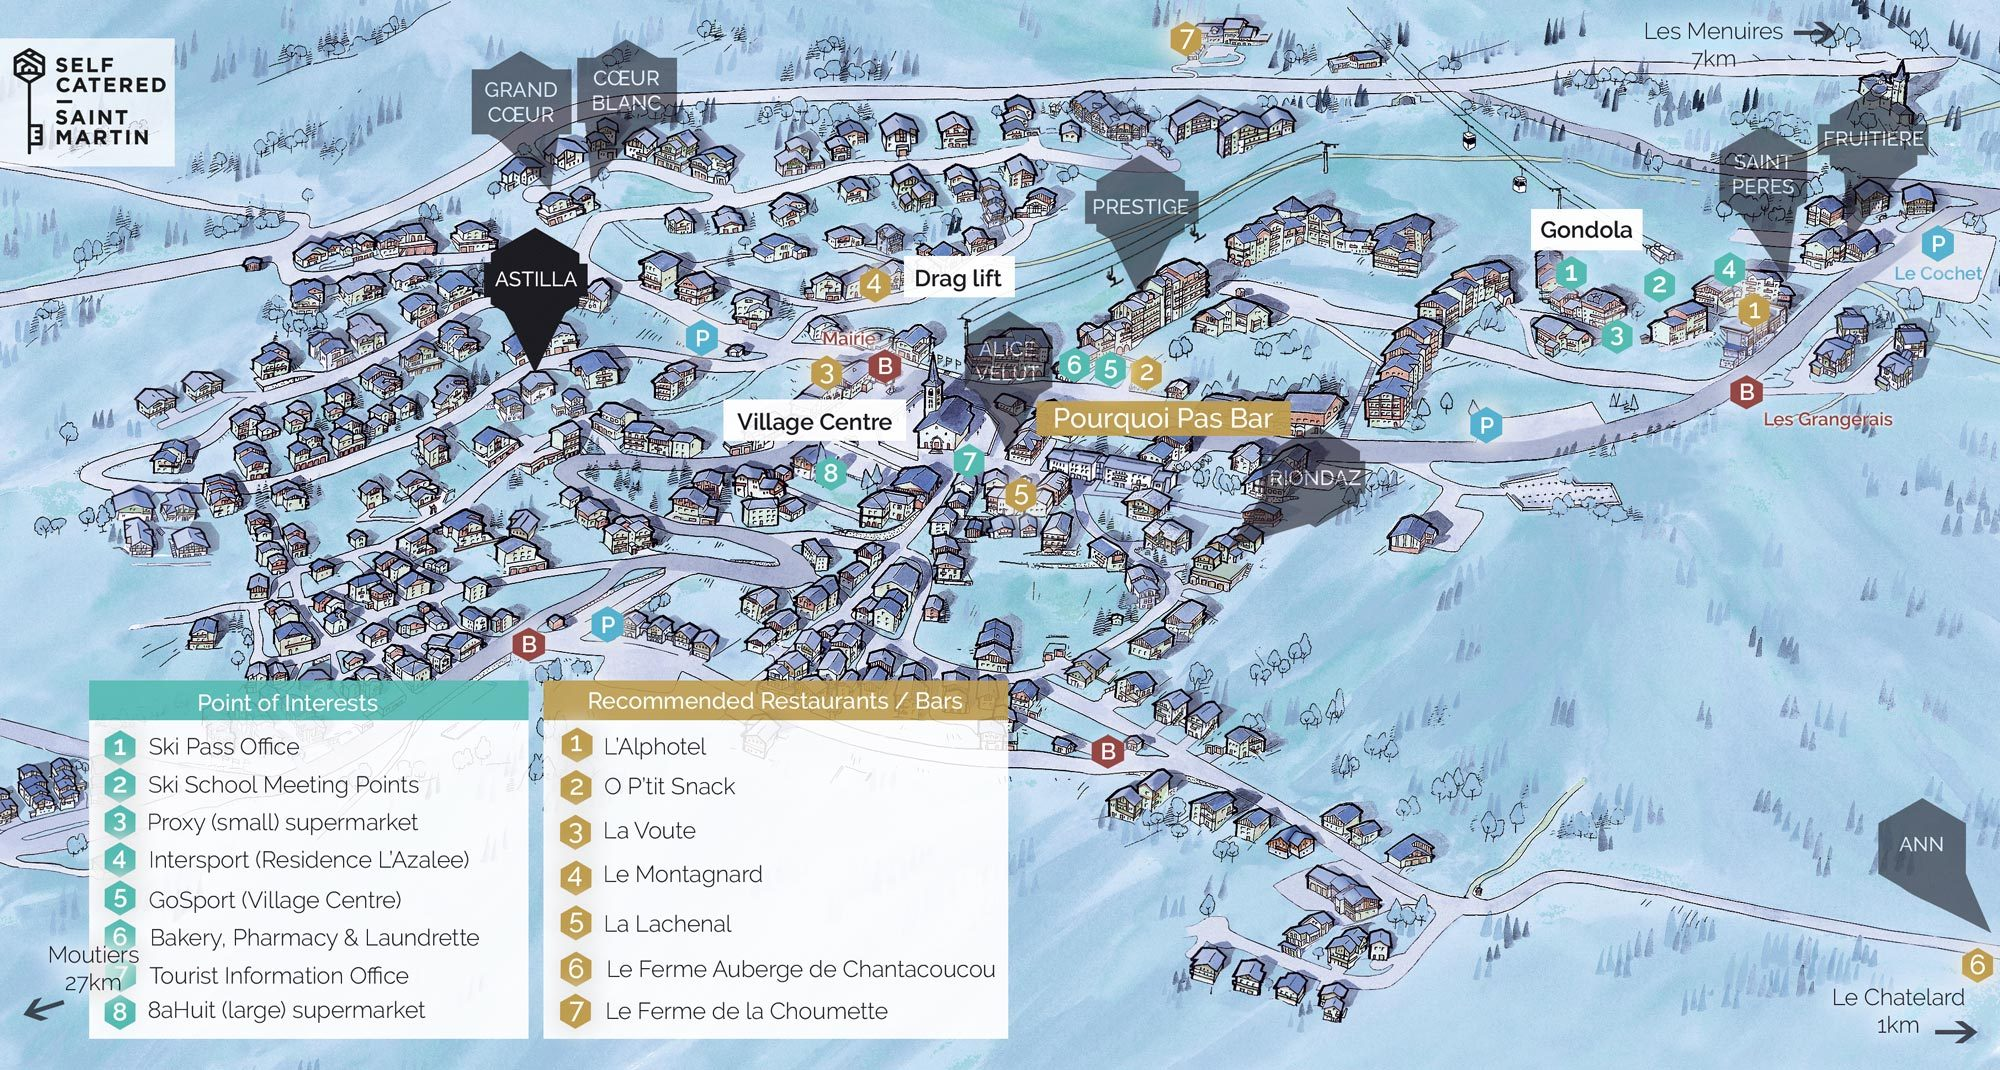 Chalet Astilla in St Martin de Belleville | Resort Map | Self Catered - Saint Martin